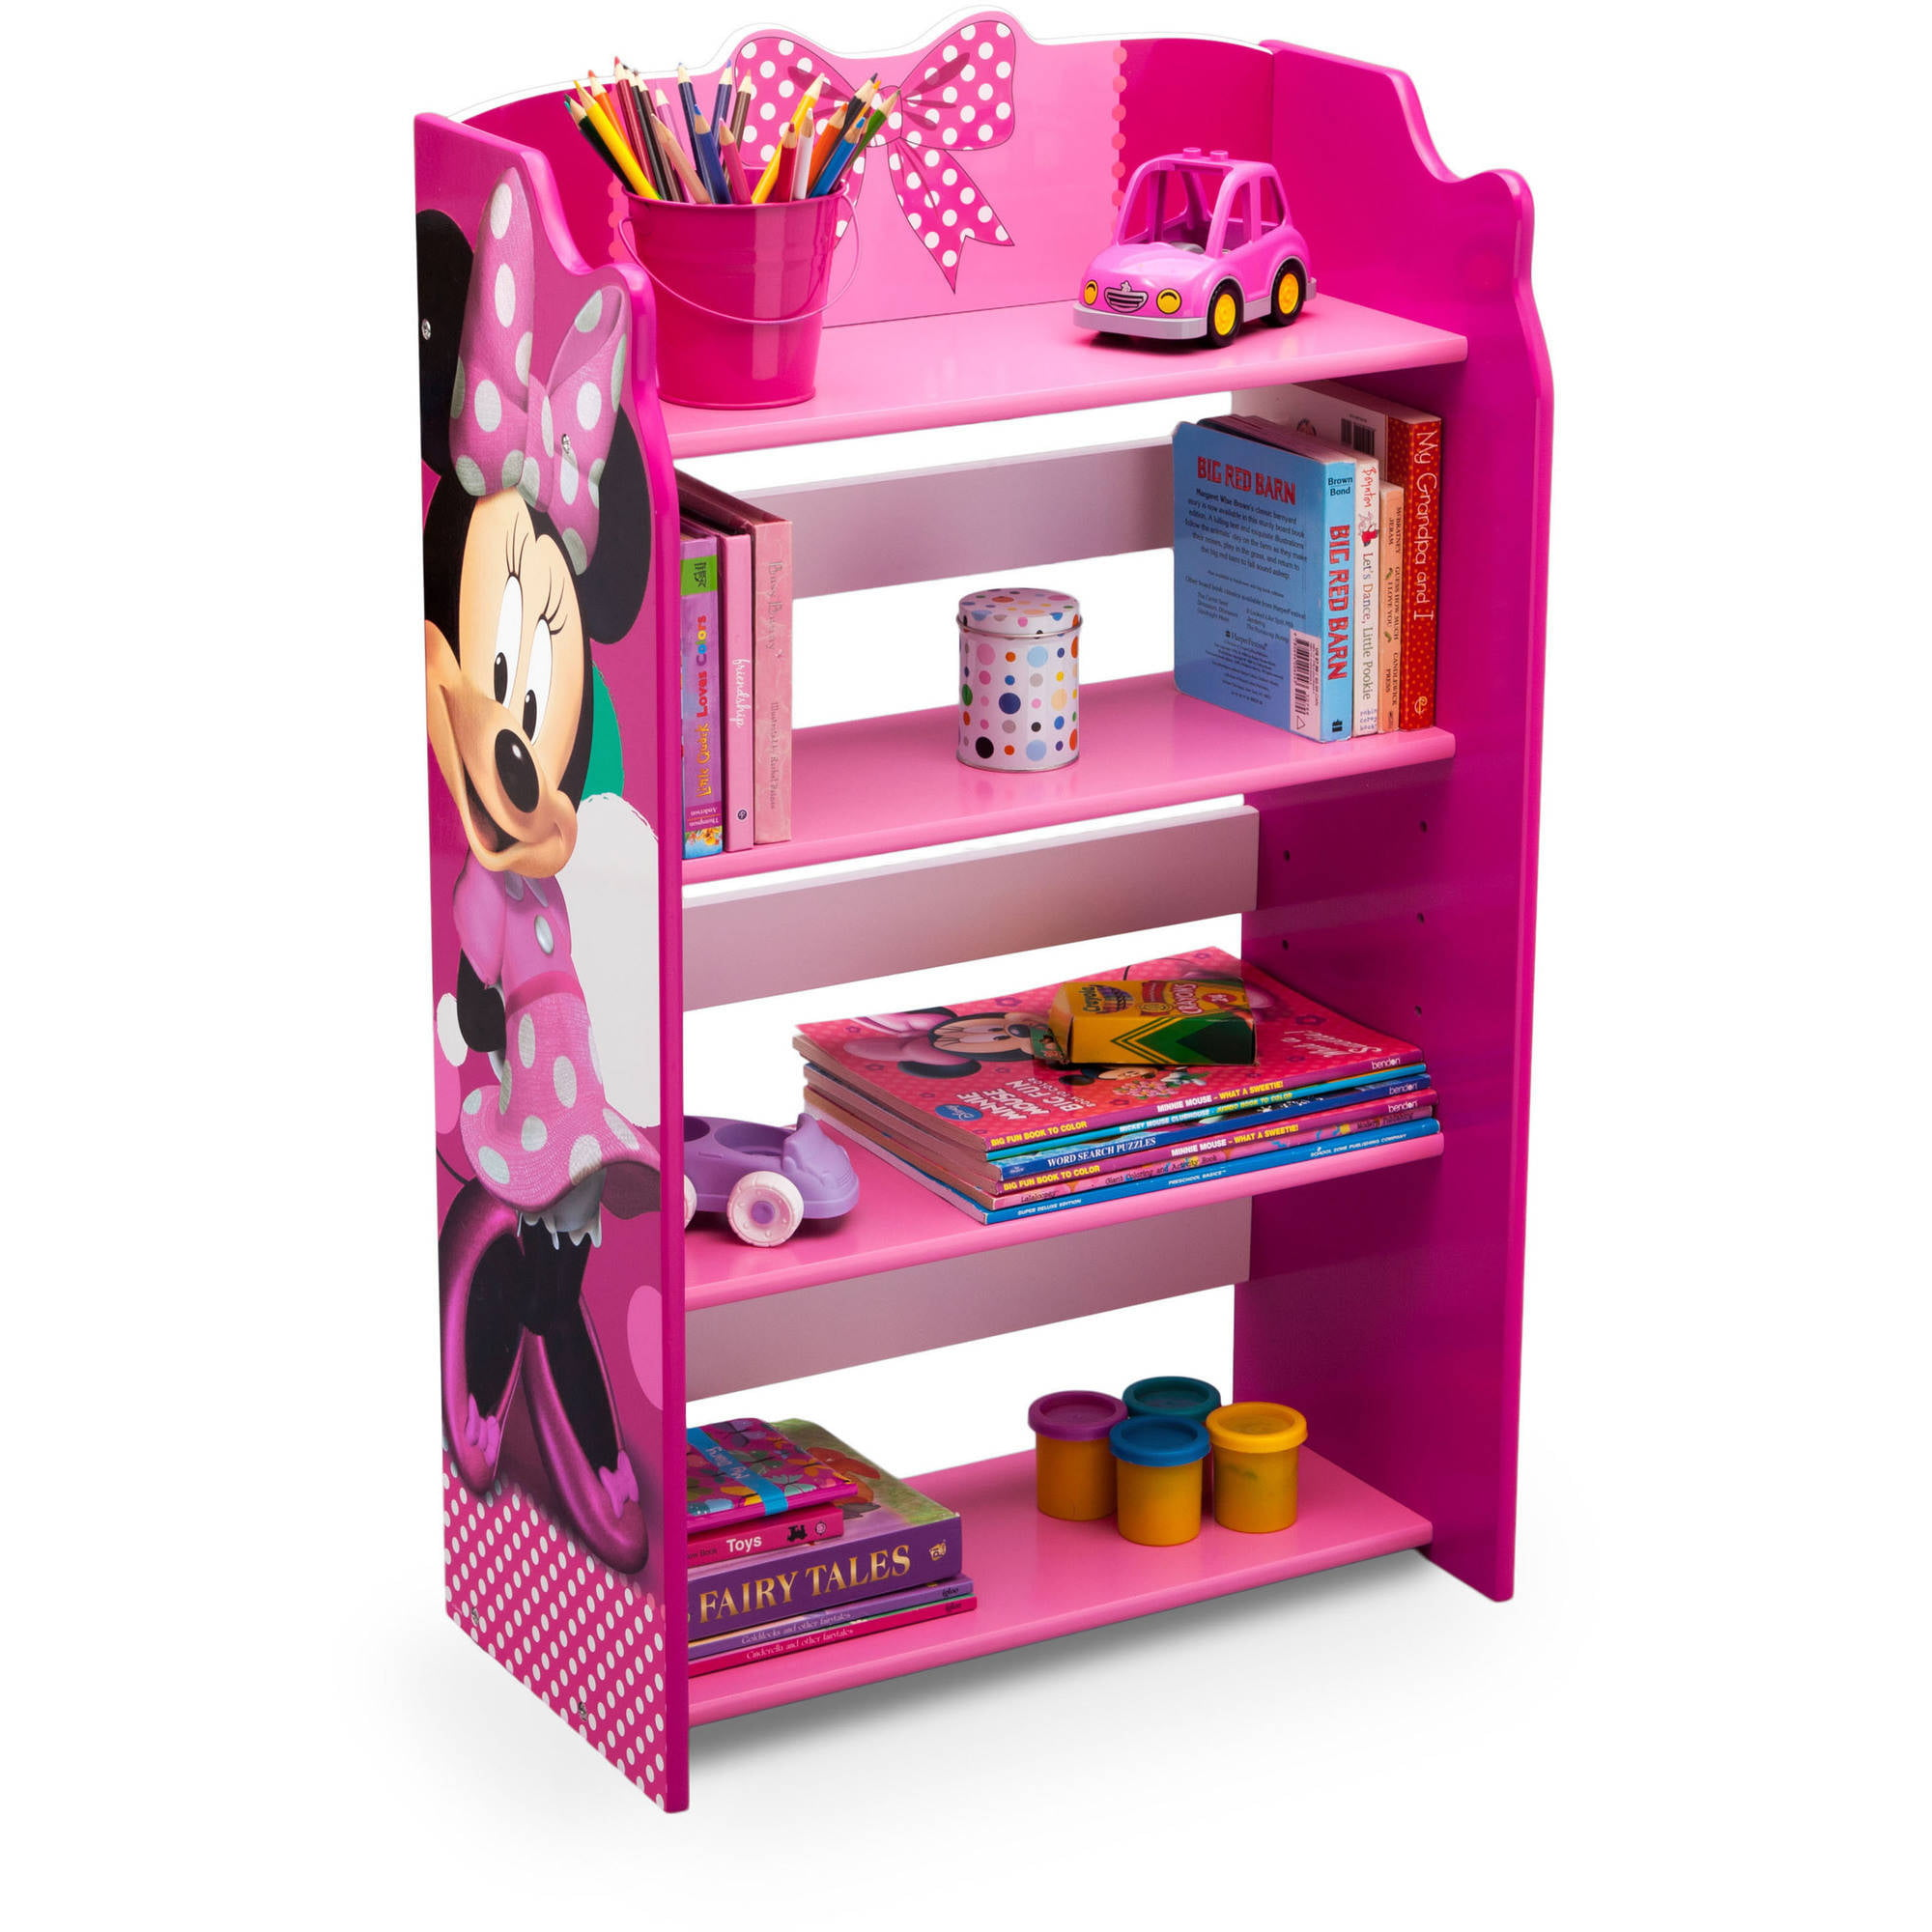 themed bookshelf product theme princess home style kiddi furniture sling kiddy products